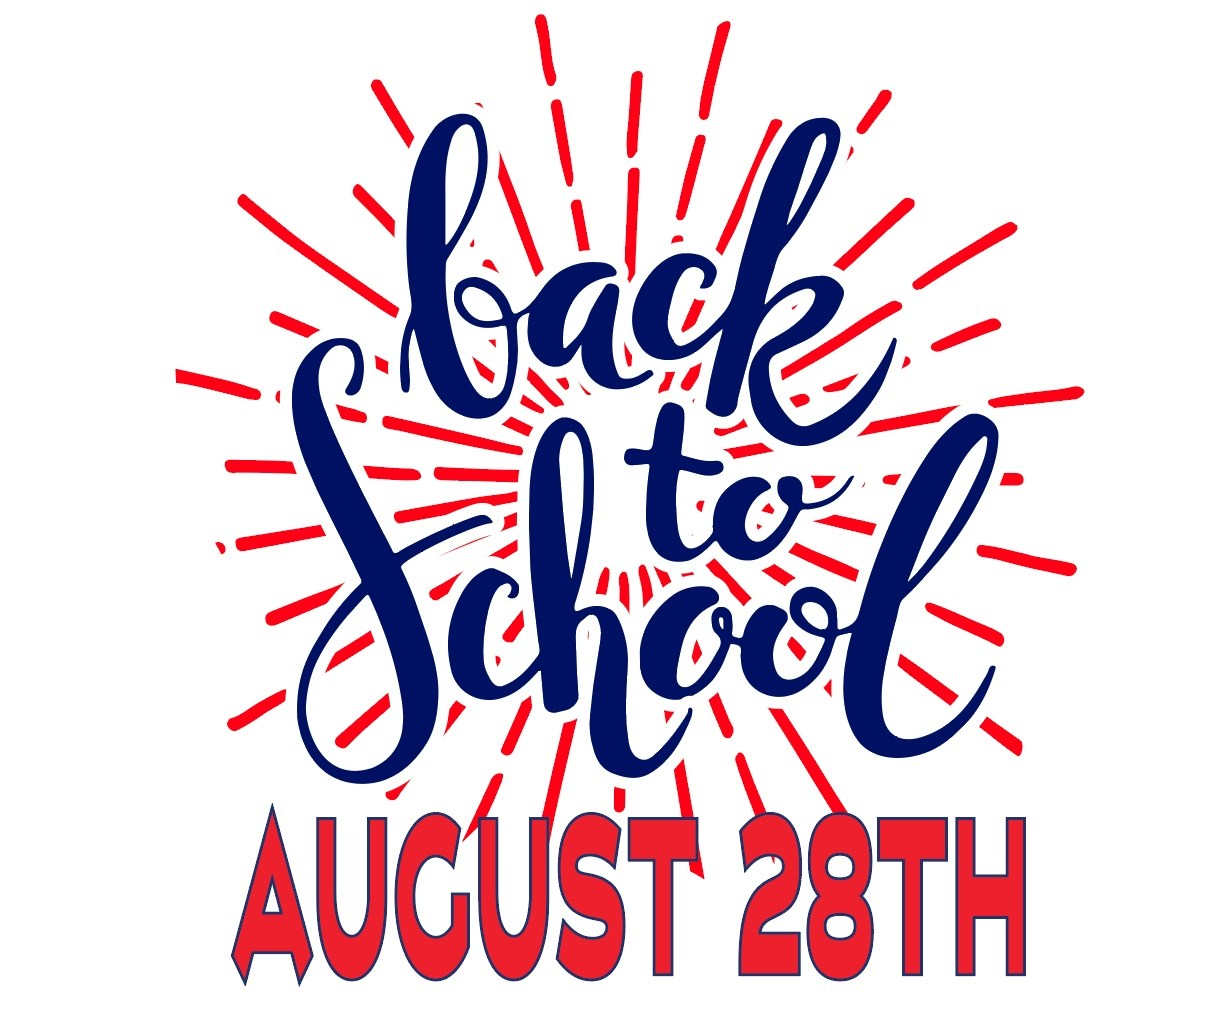 Back to school is August 28th!